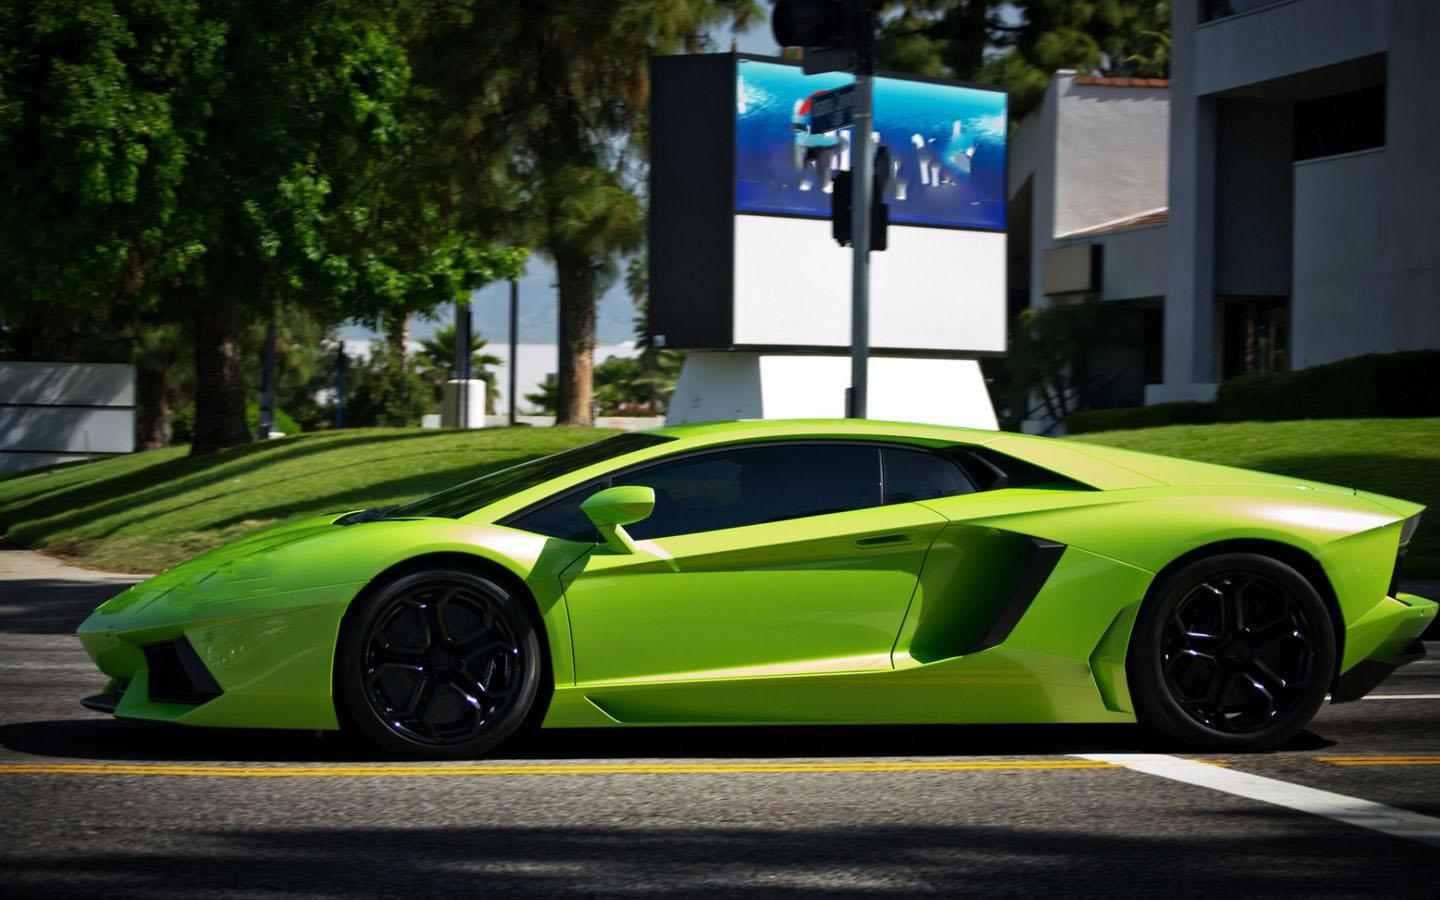 Sports Car Wallpaper - Android Apps on Google Play